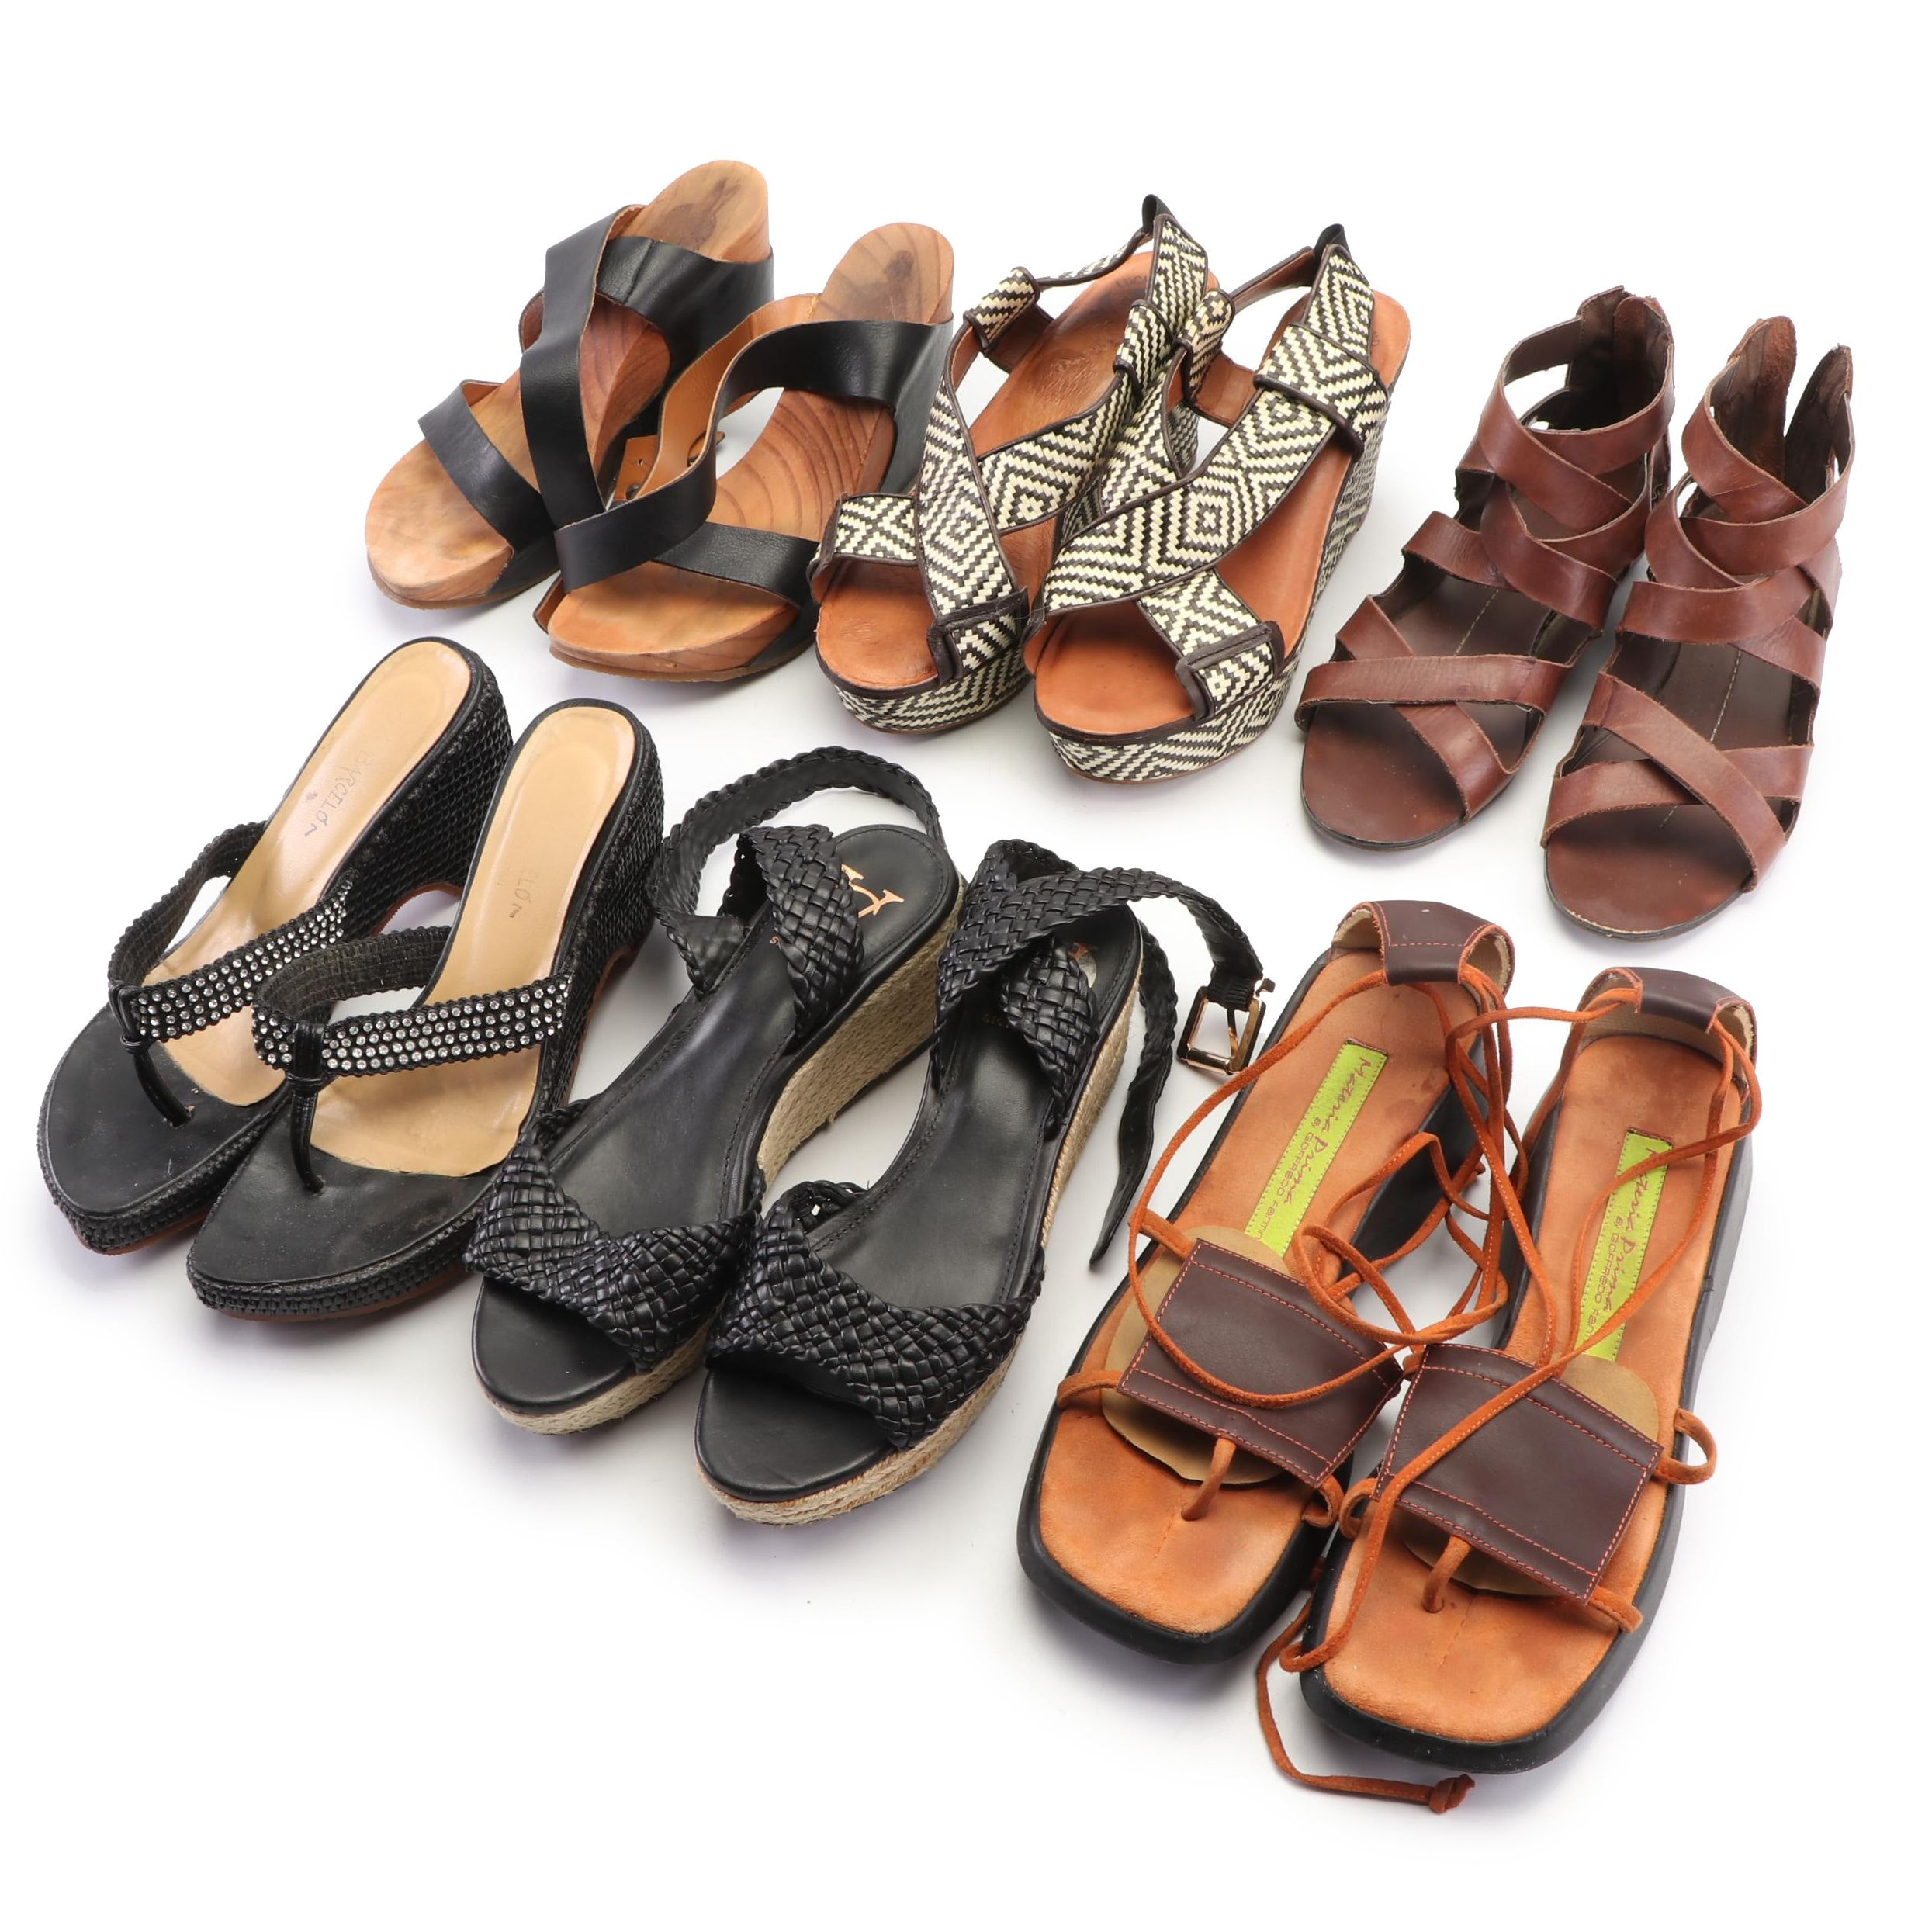 Women's Wedge Shoes Including Vince Camuto and Lucky Brand